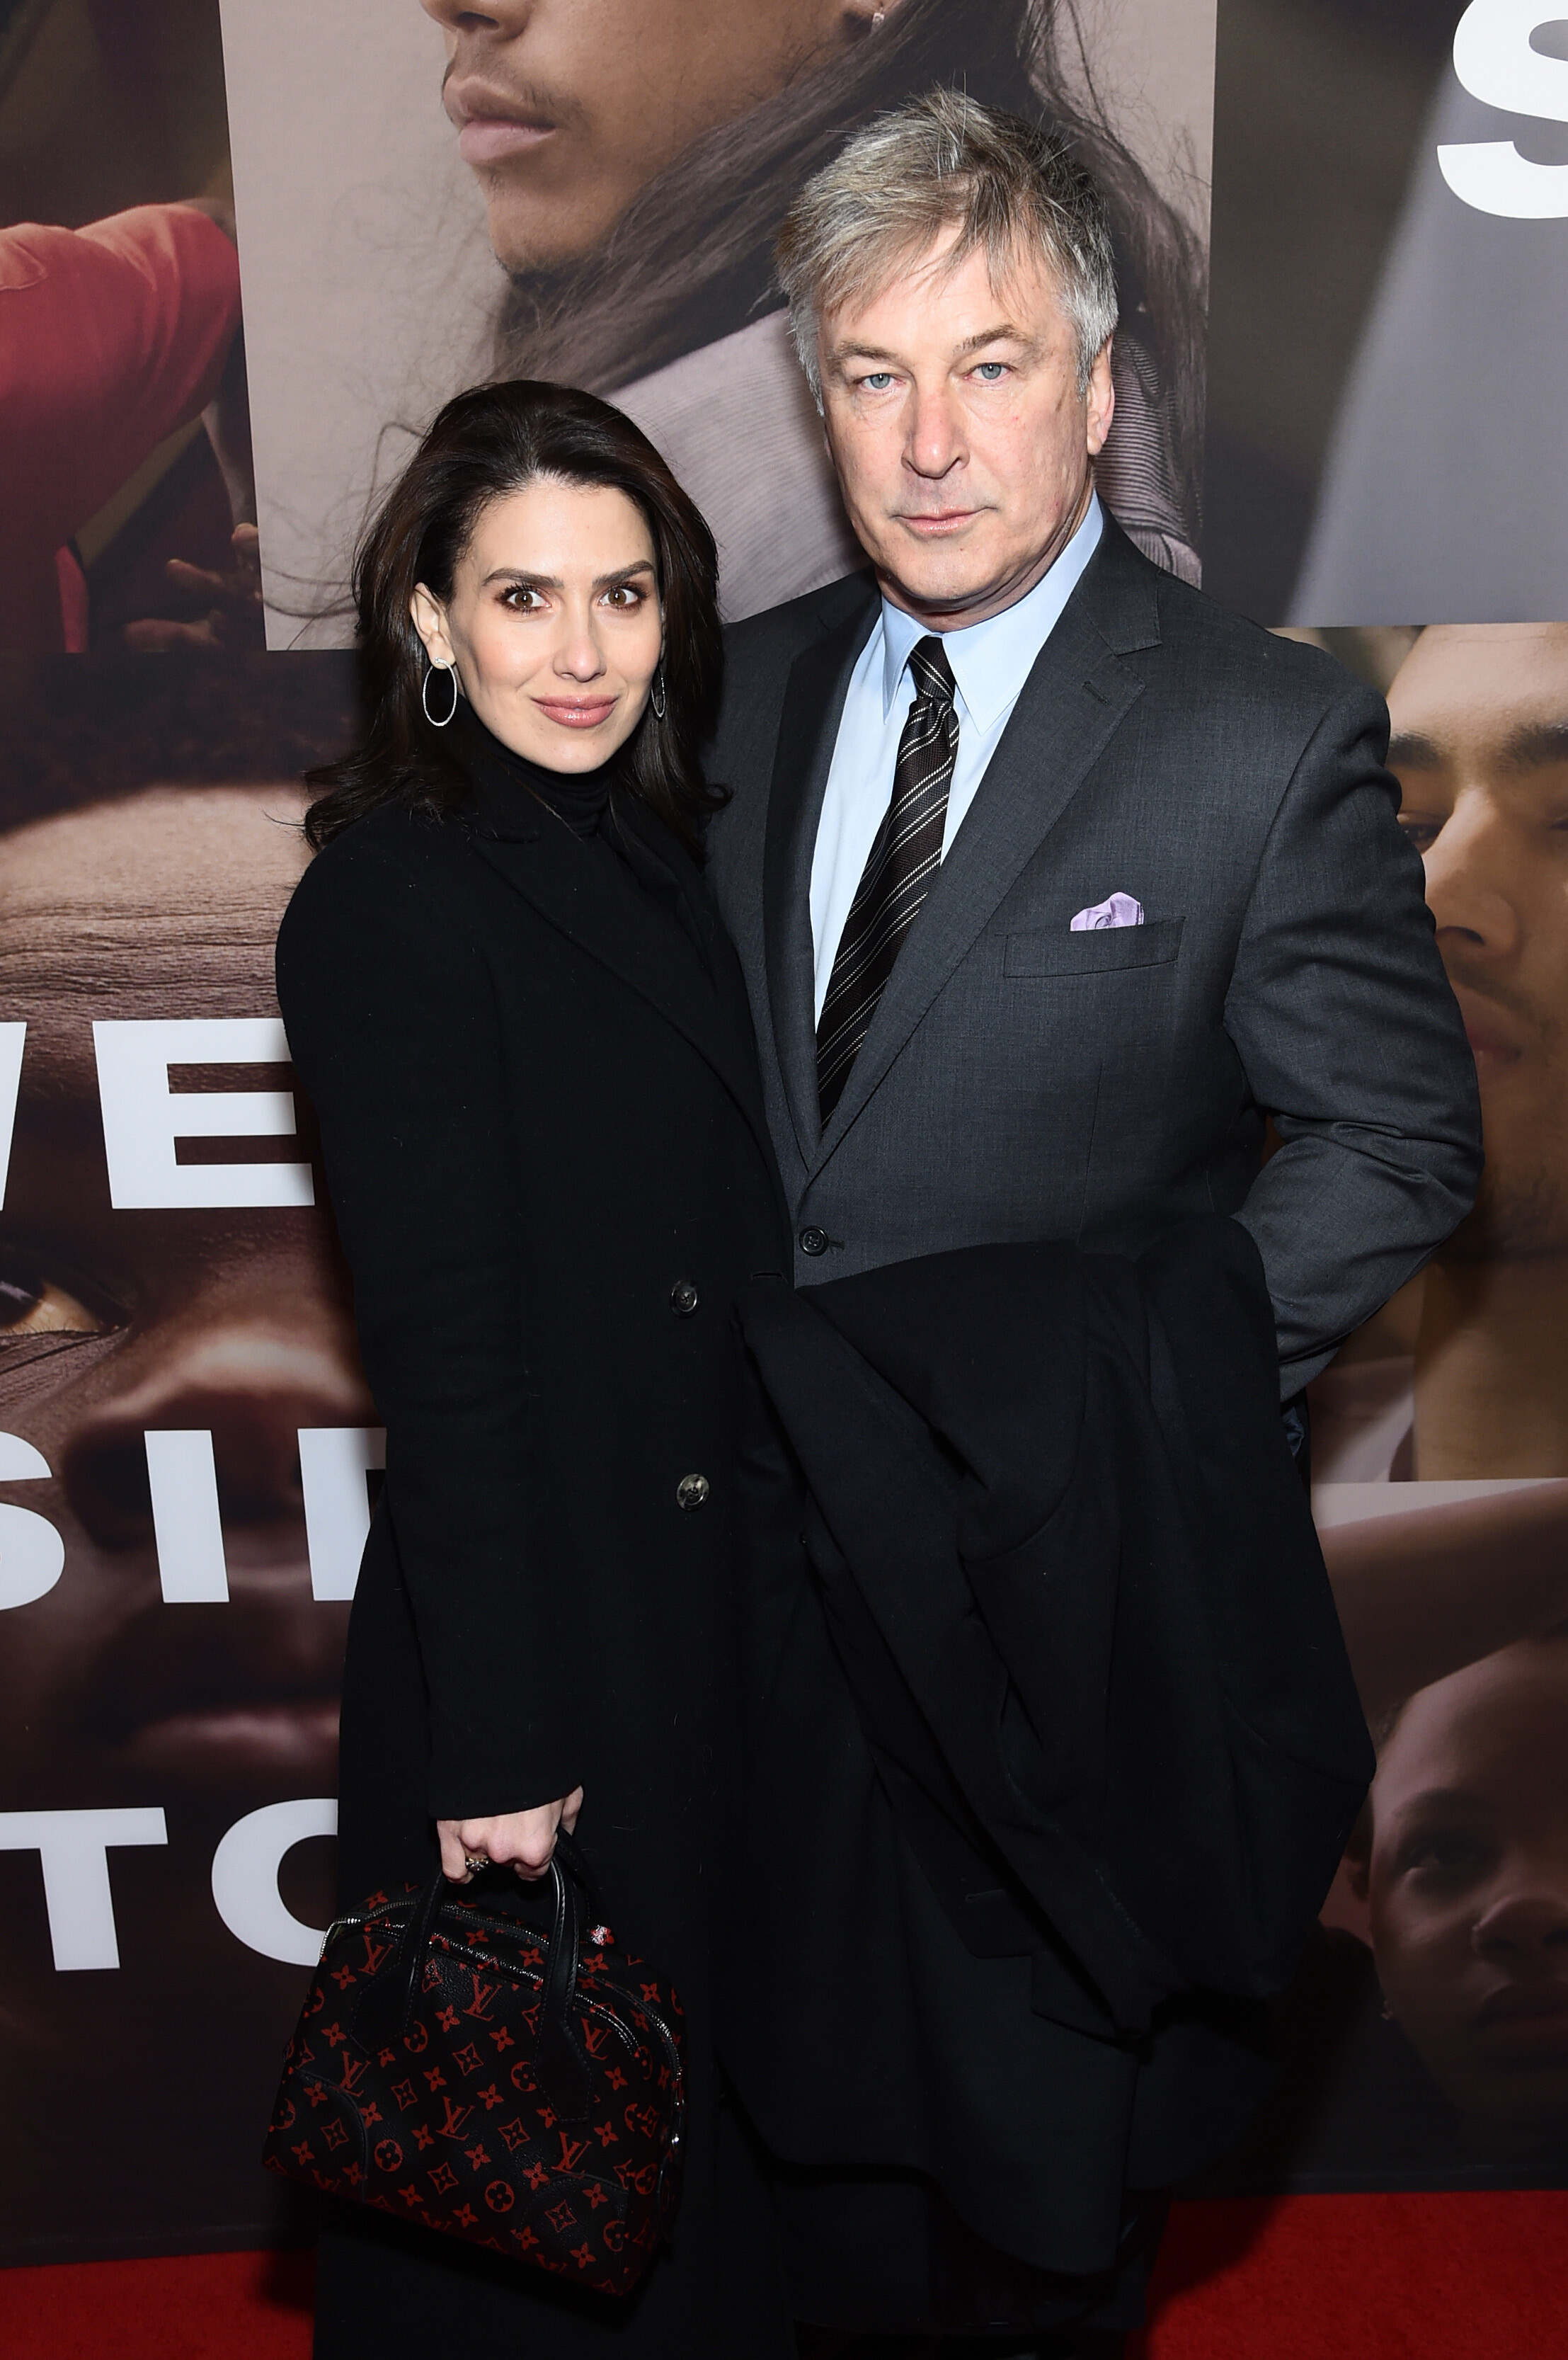 Hilaria Baldwin posts first public comments on 'Rust' shooting incident